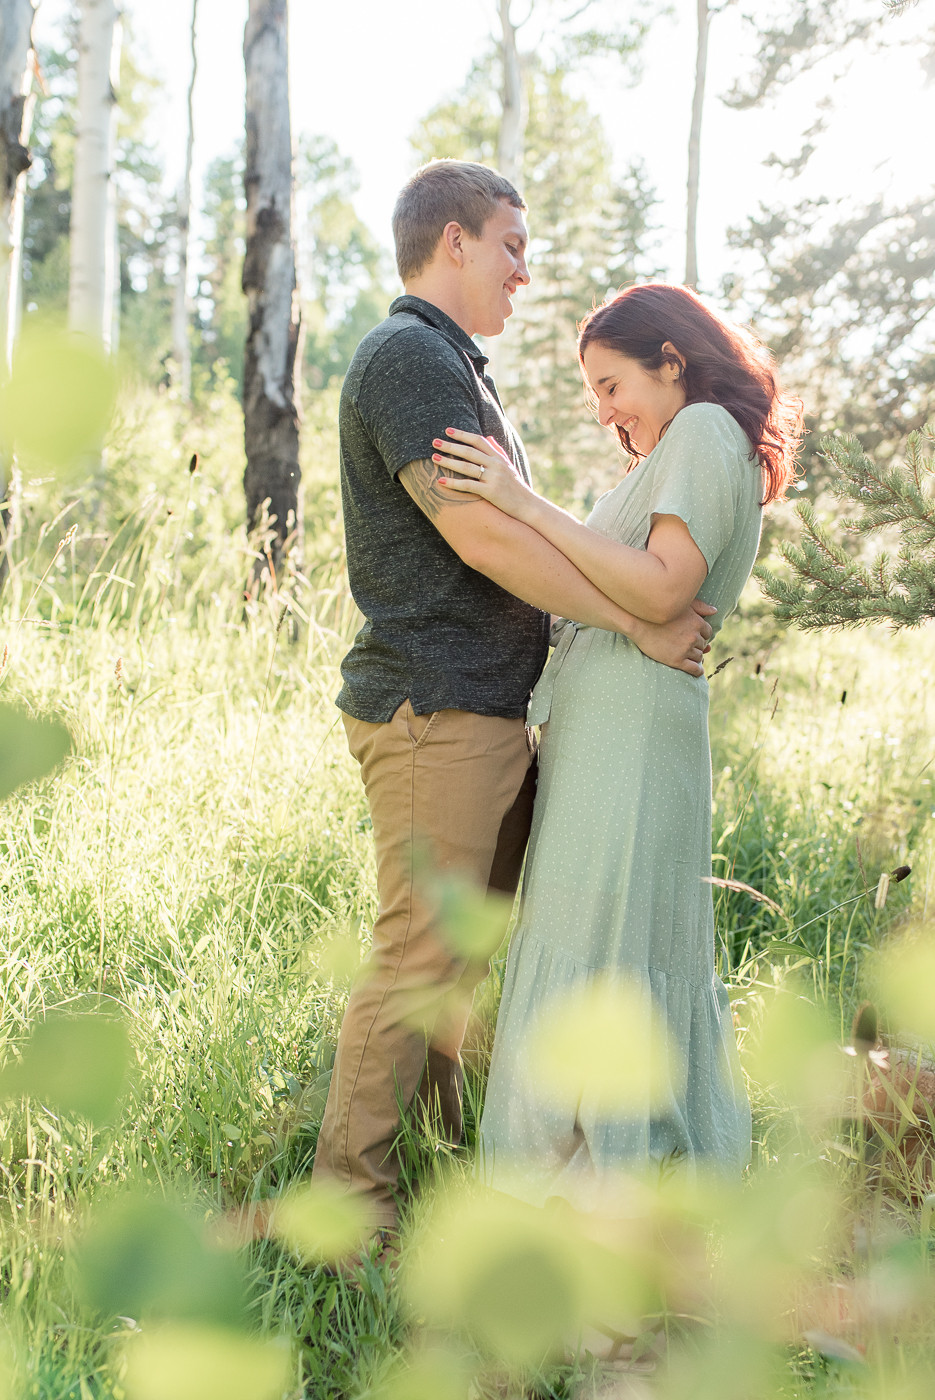 Wedding, Engagements, Couples, Marriage, Southern utah Photographer, Cedar City, Utah, Inspiration, Mountains